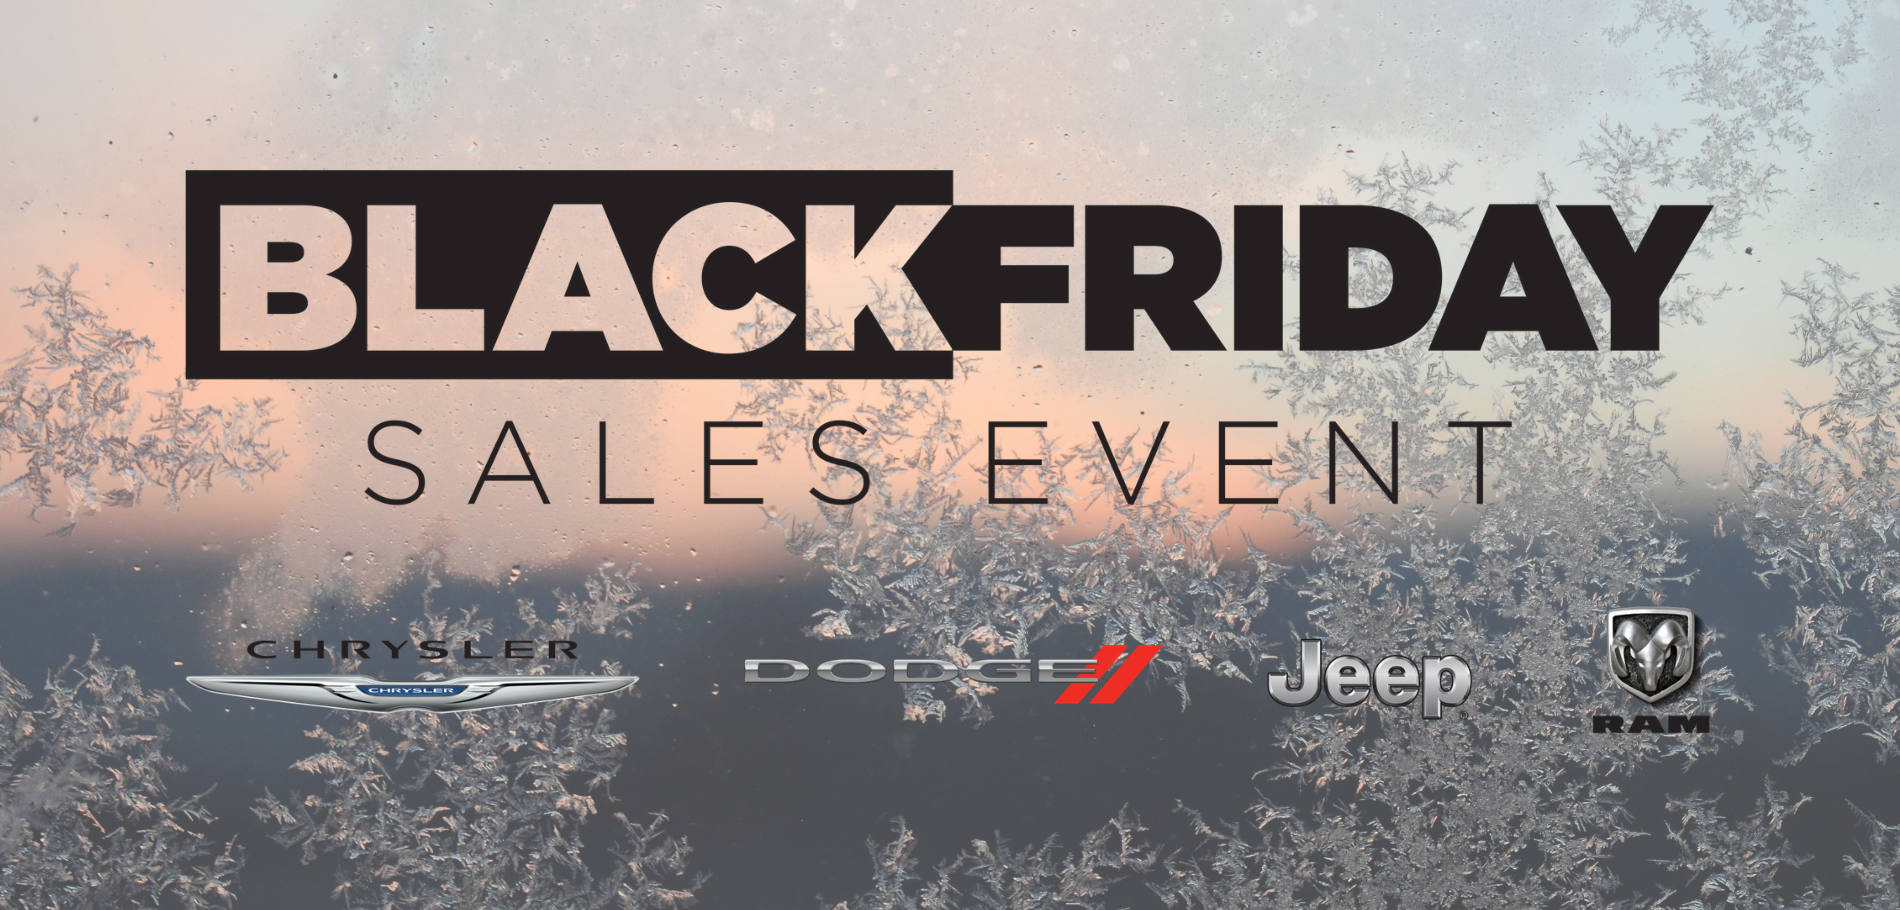 2018 Black Friday Sales Event